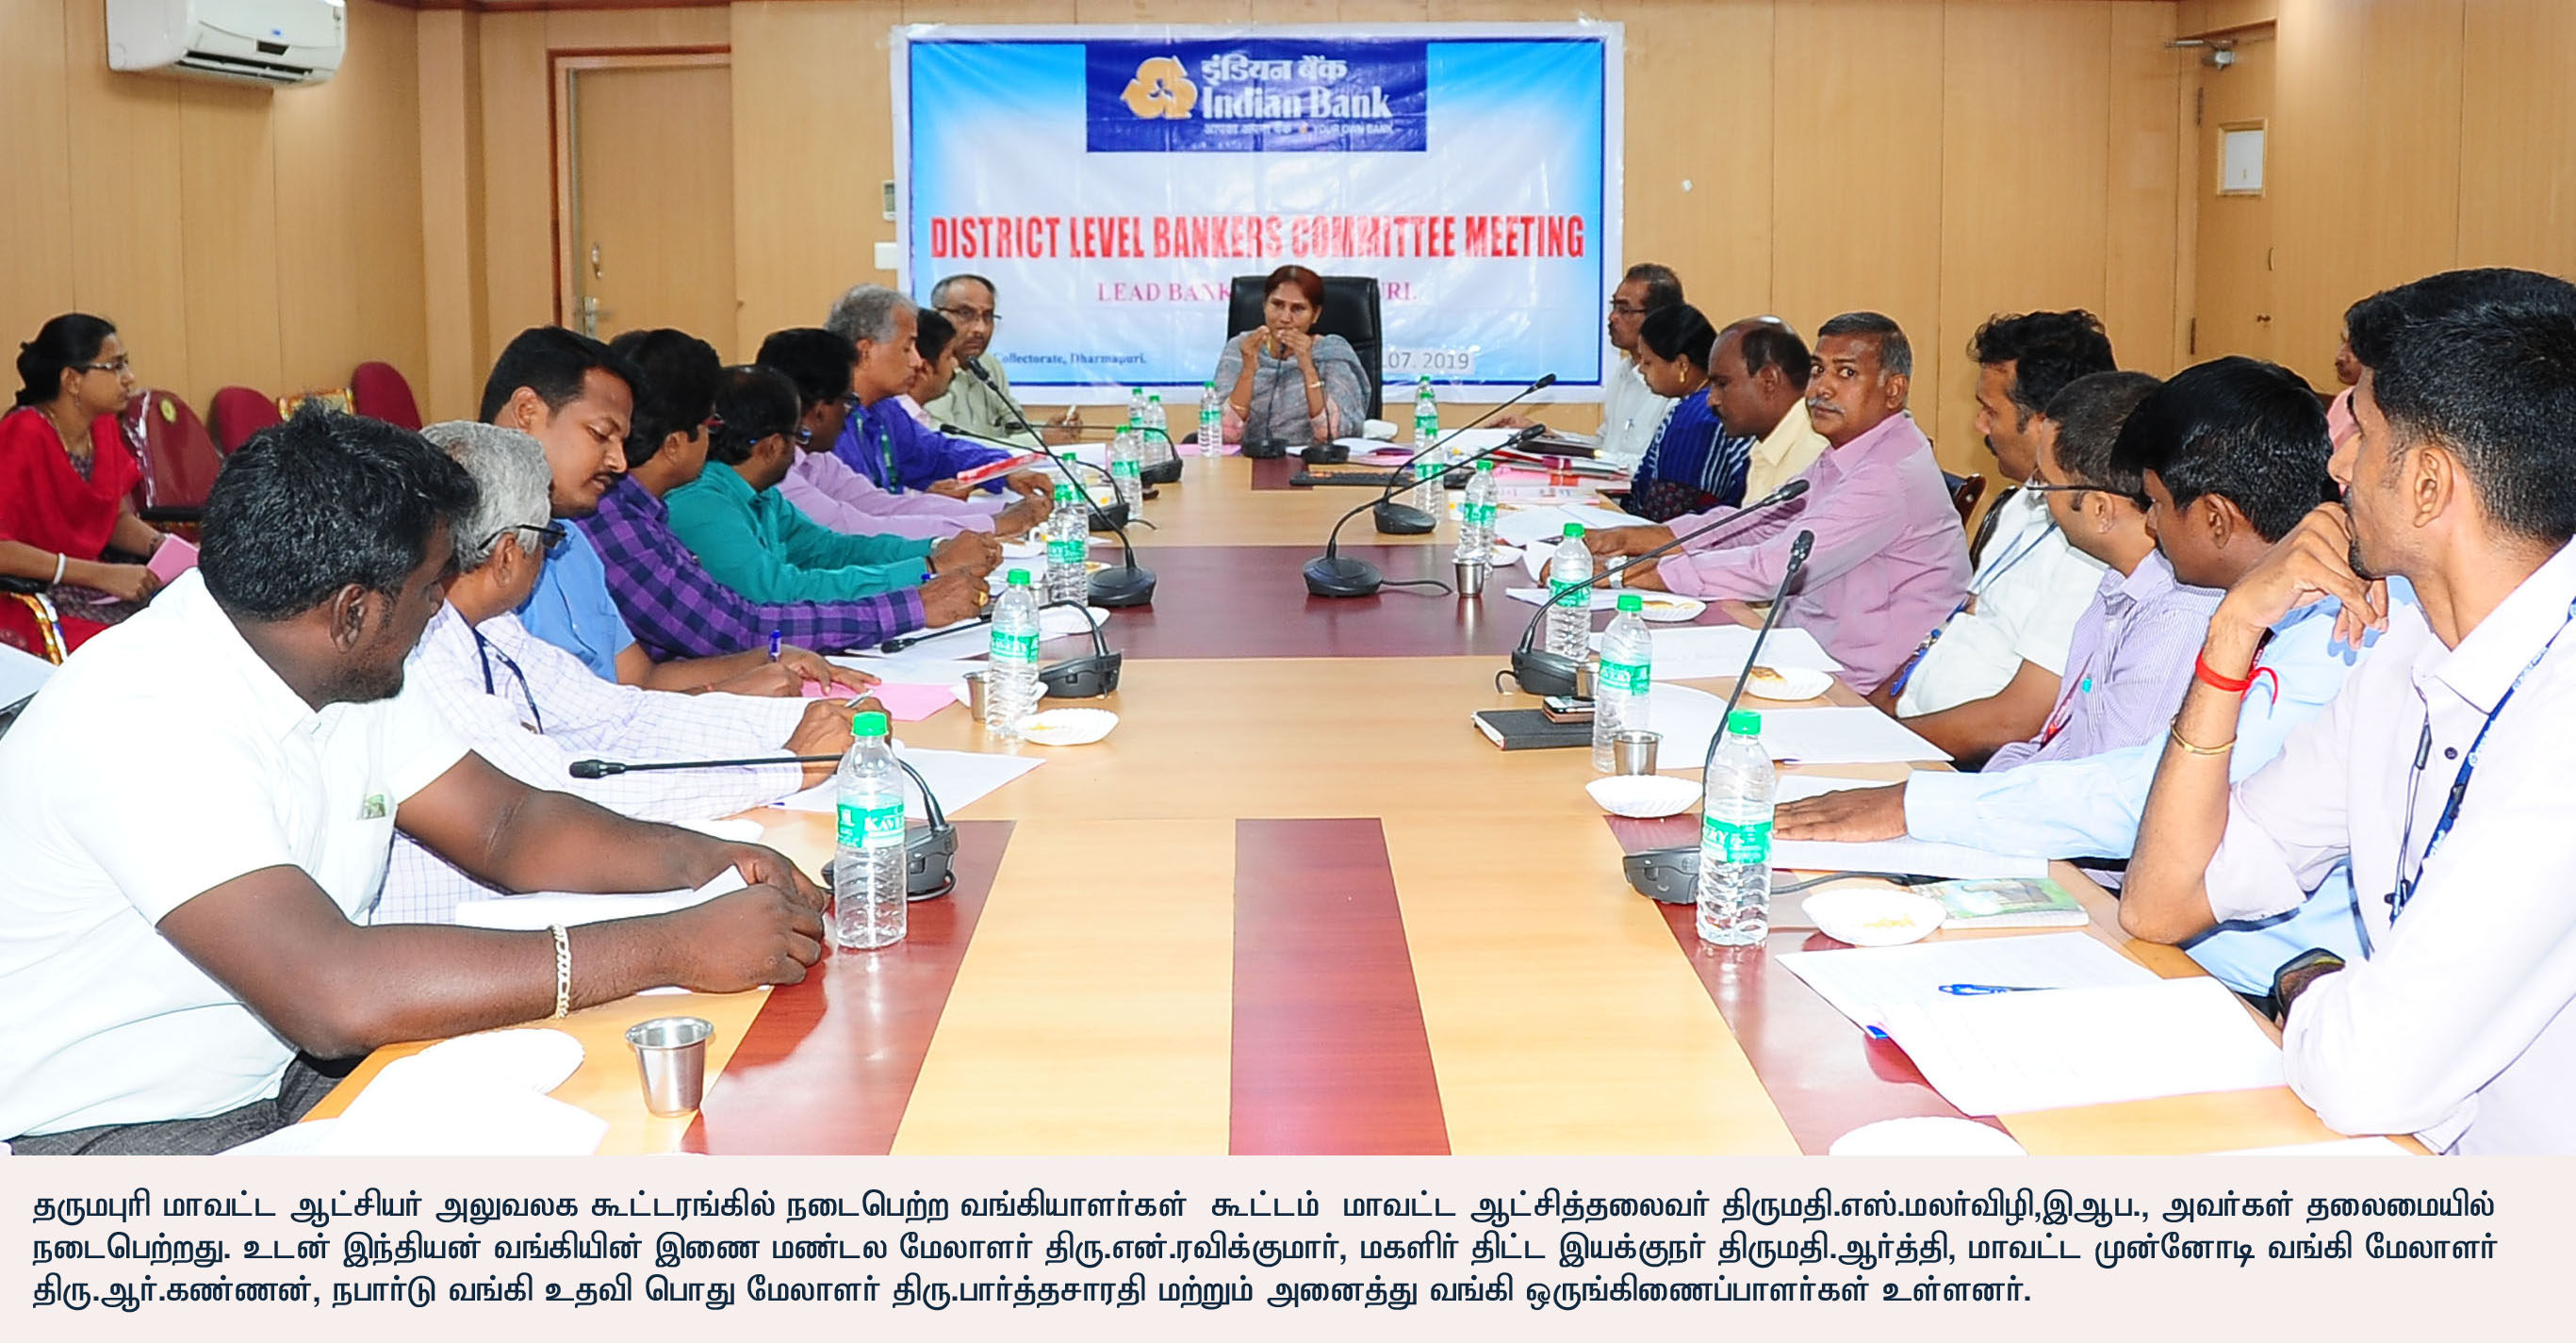 District Level Bankers Committee Meeting